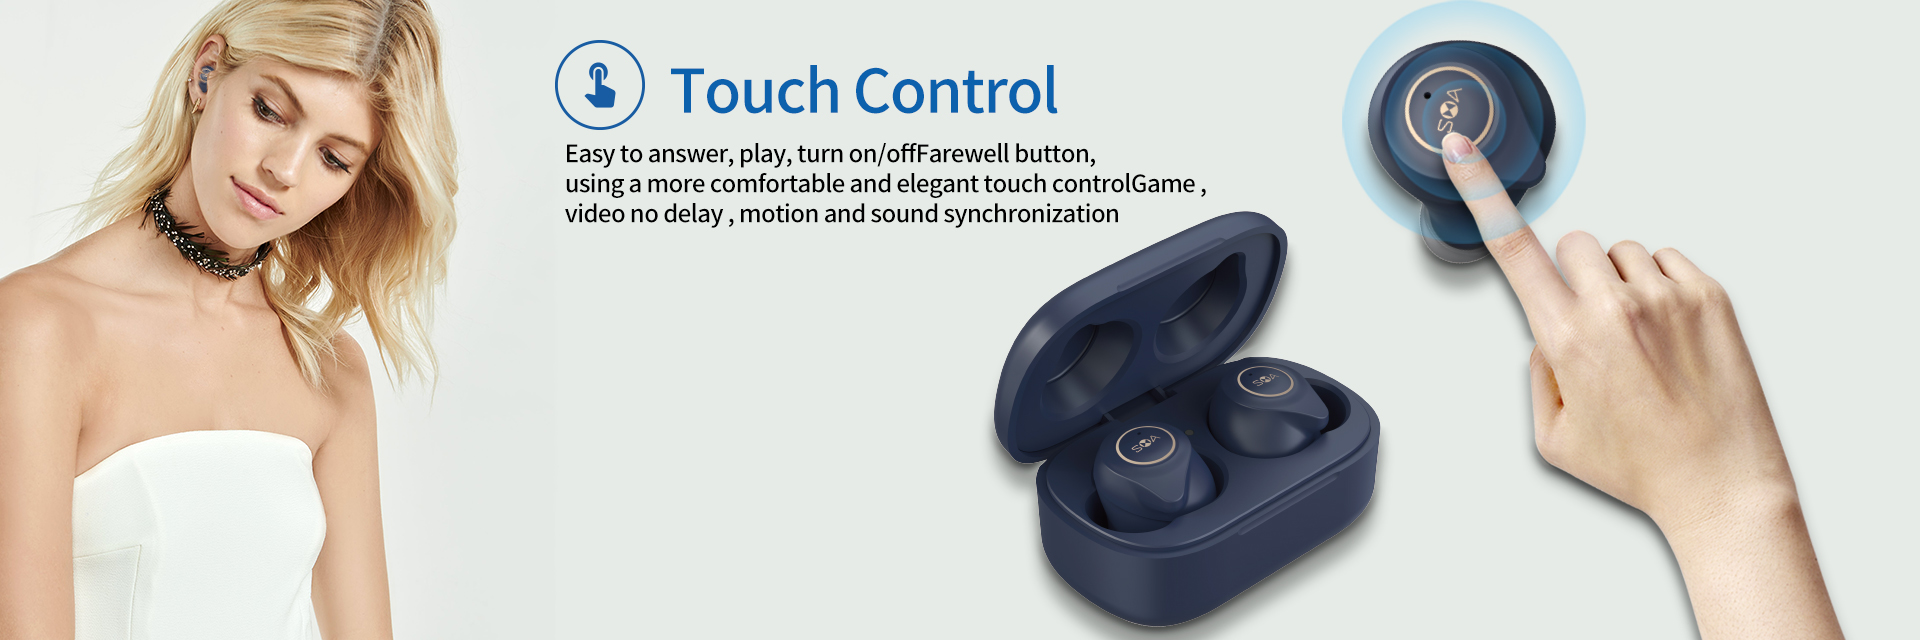 Realtek/QCC3020 optional noise cancelling Bluetooth 5.0 binautal music and call